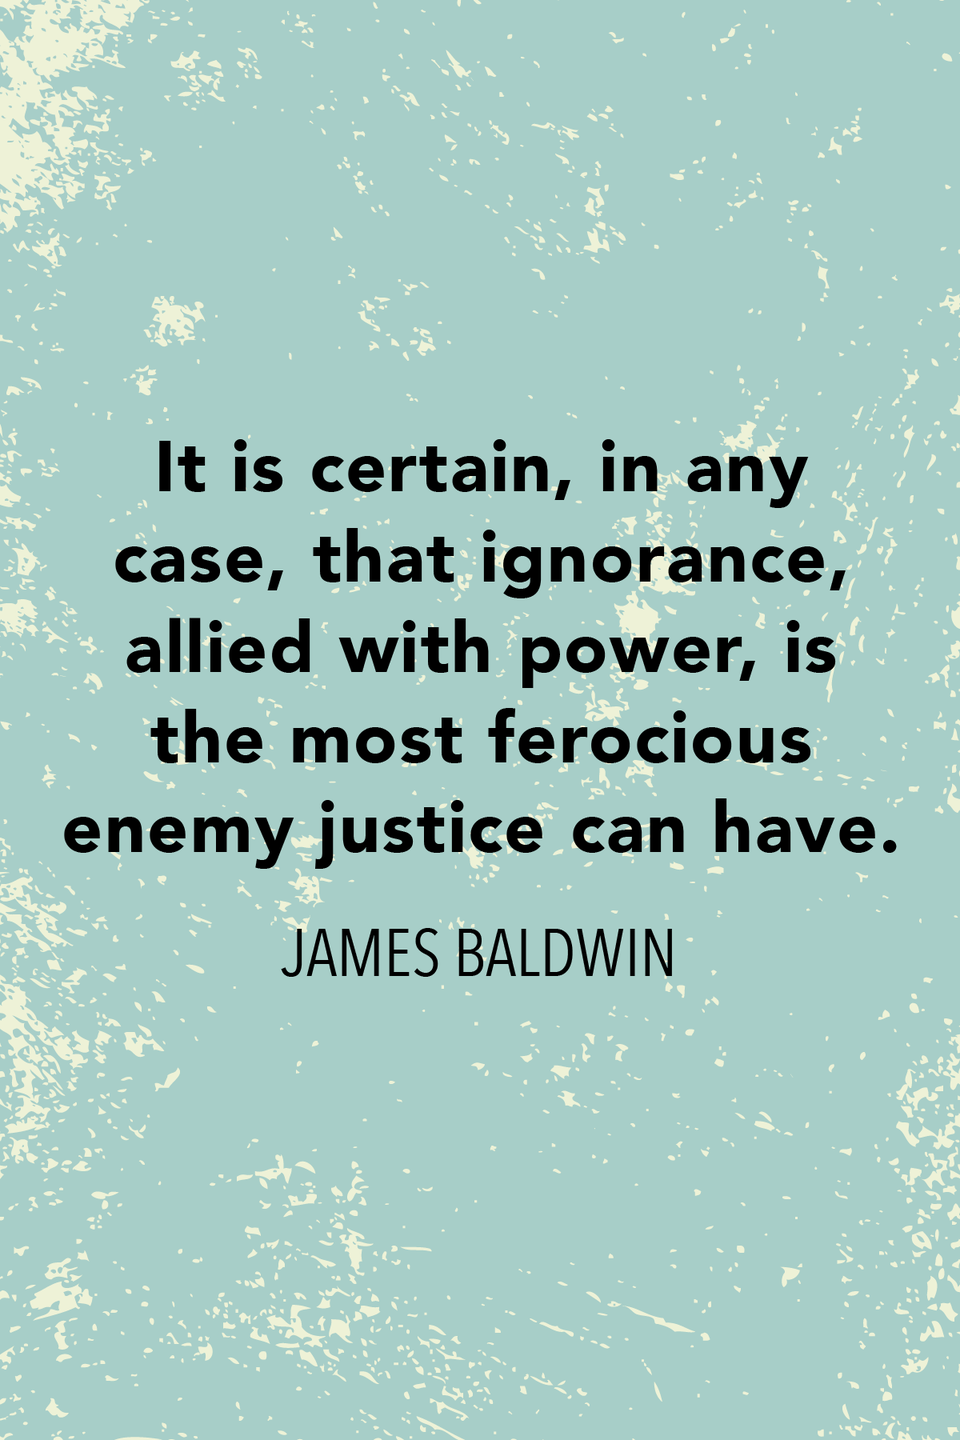 """<p>""""It is certain, in any case, that ignorance, allied with power, is the most ferocious enemy justice can have,"""" Baldwin wrote in his essay <em>No Name in the Street</em>.</p>"""